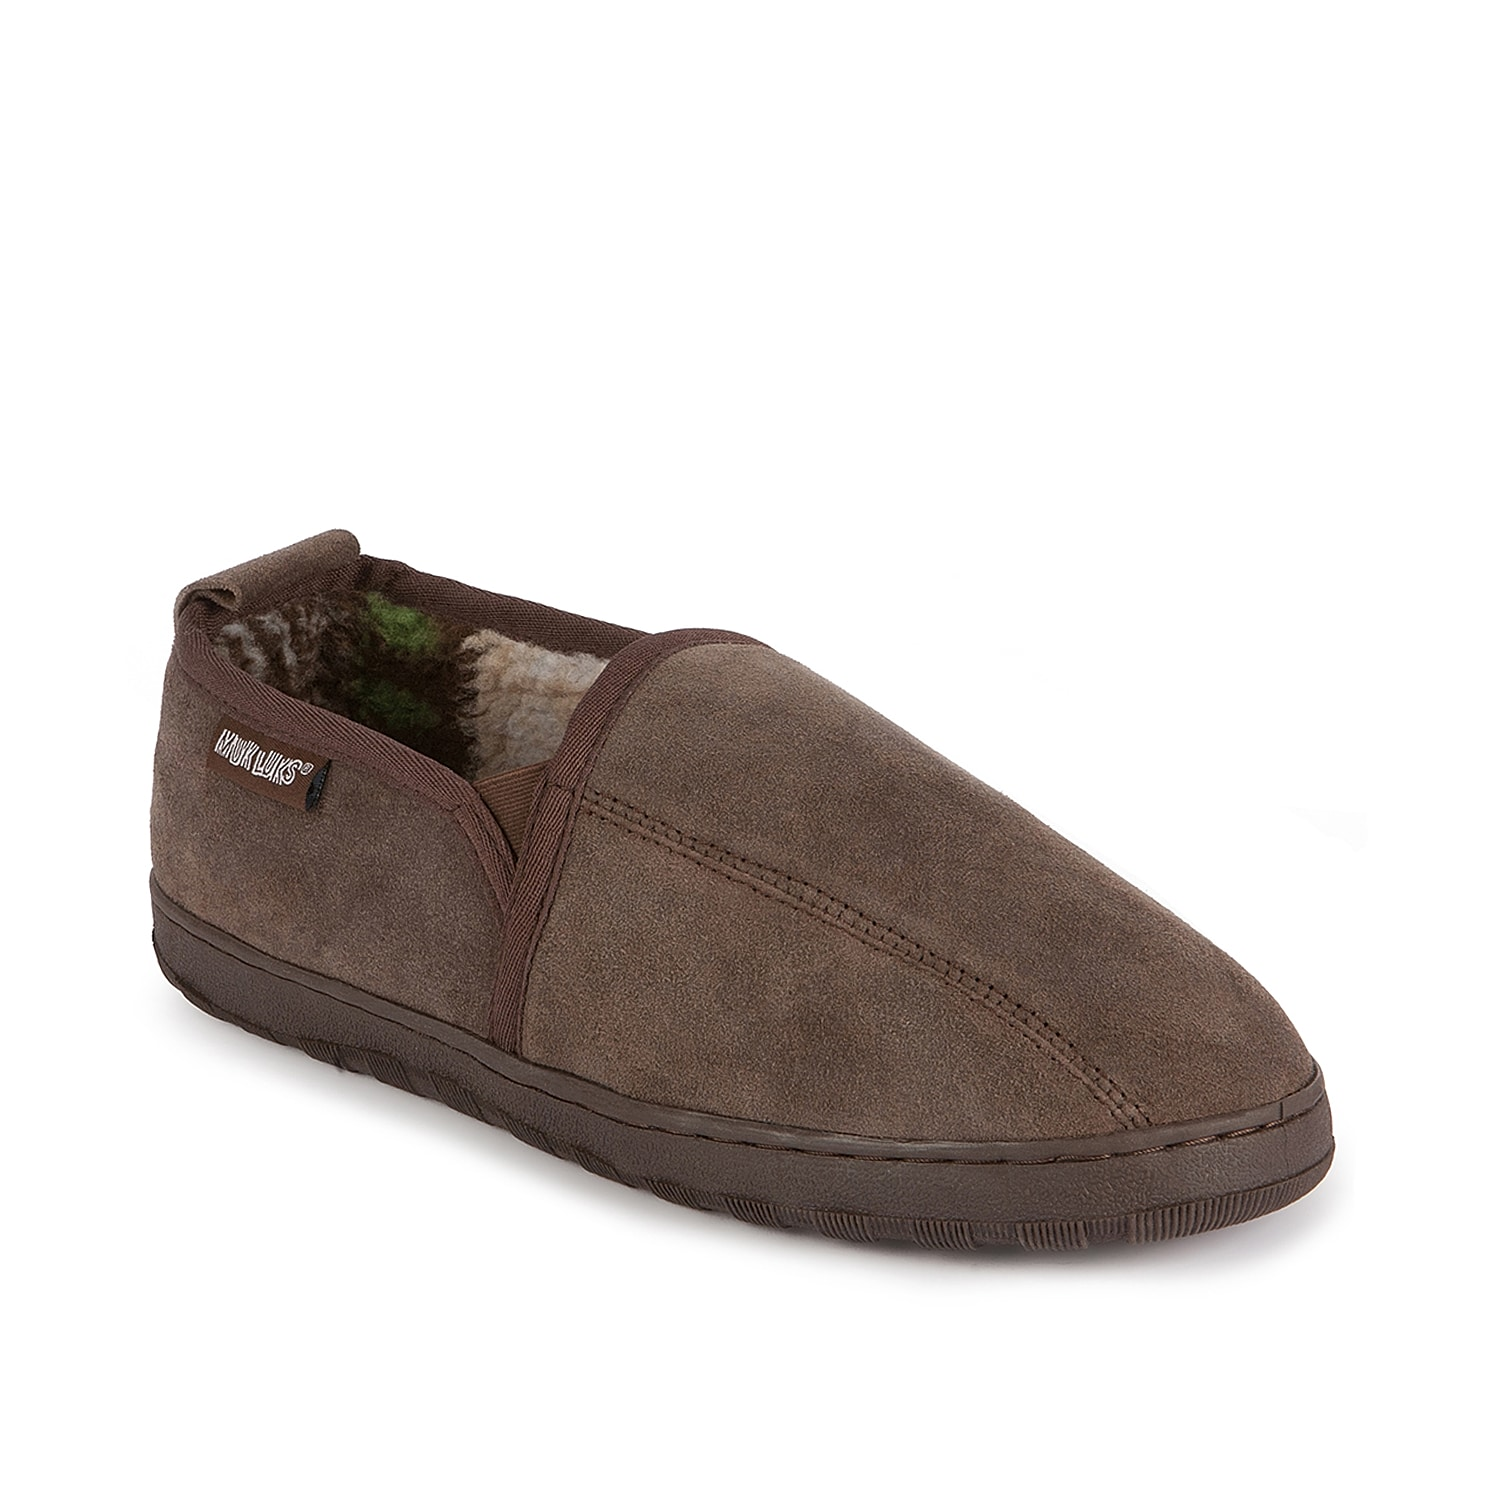 For a look and feel that will keep you feeling and looking good, Muk Luks has created the Eric suede slip-on to keep you light on your feet this season.